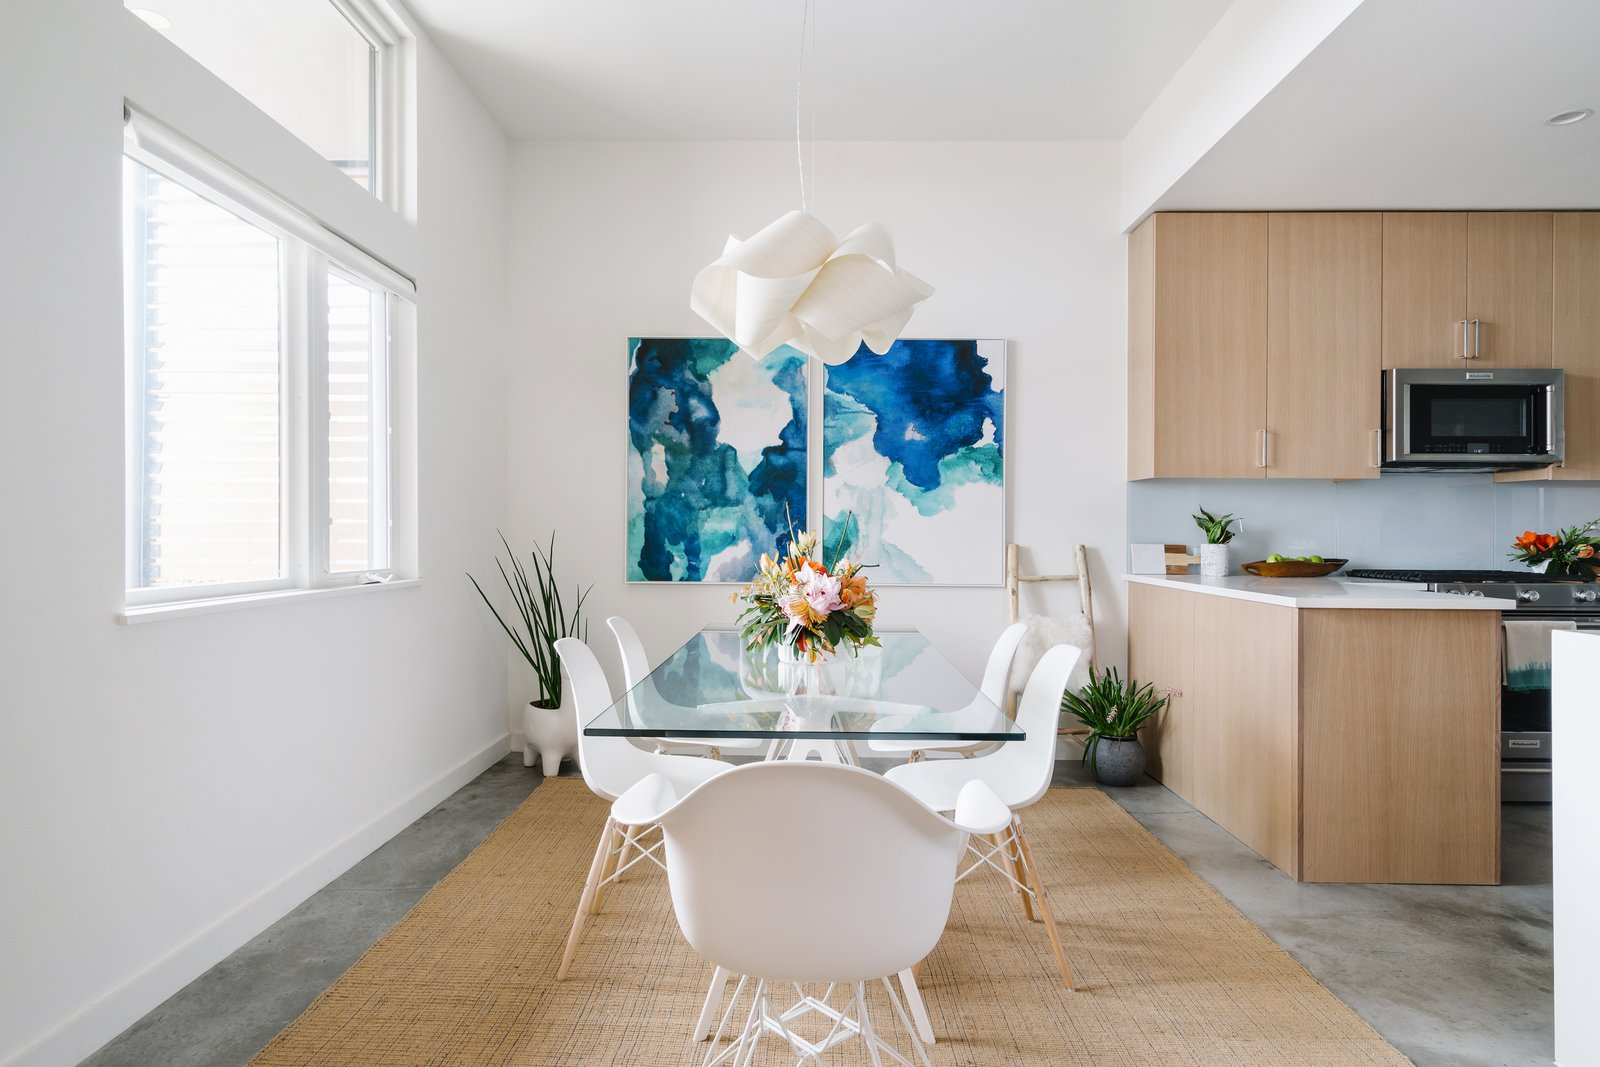 The dining room is outfitted with a pair of striking paintings by Vivian Caits.